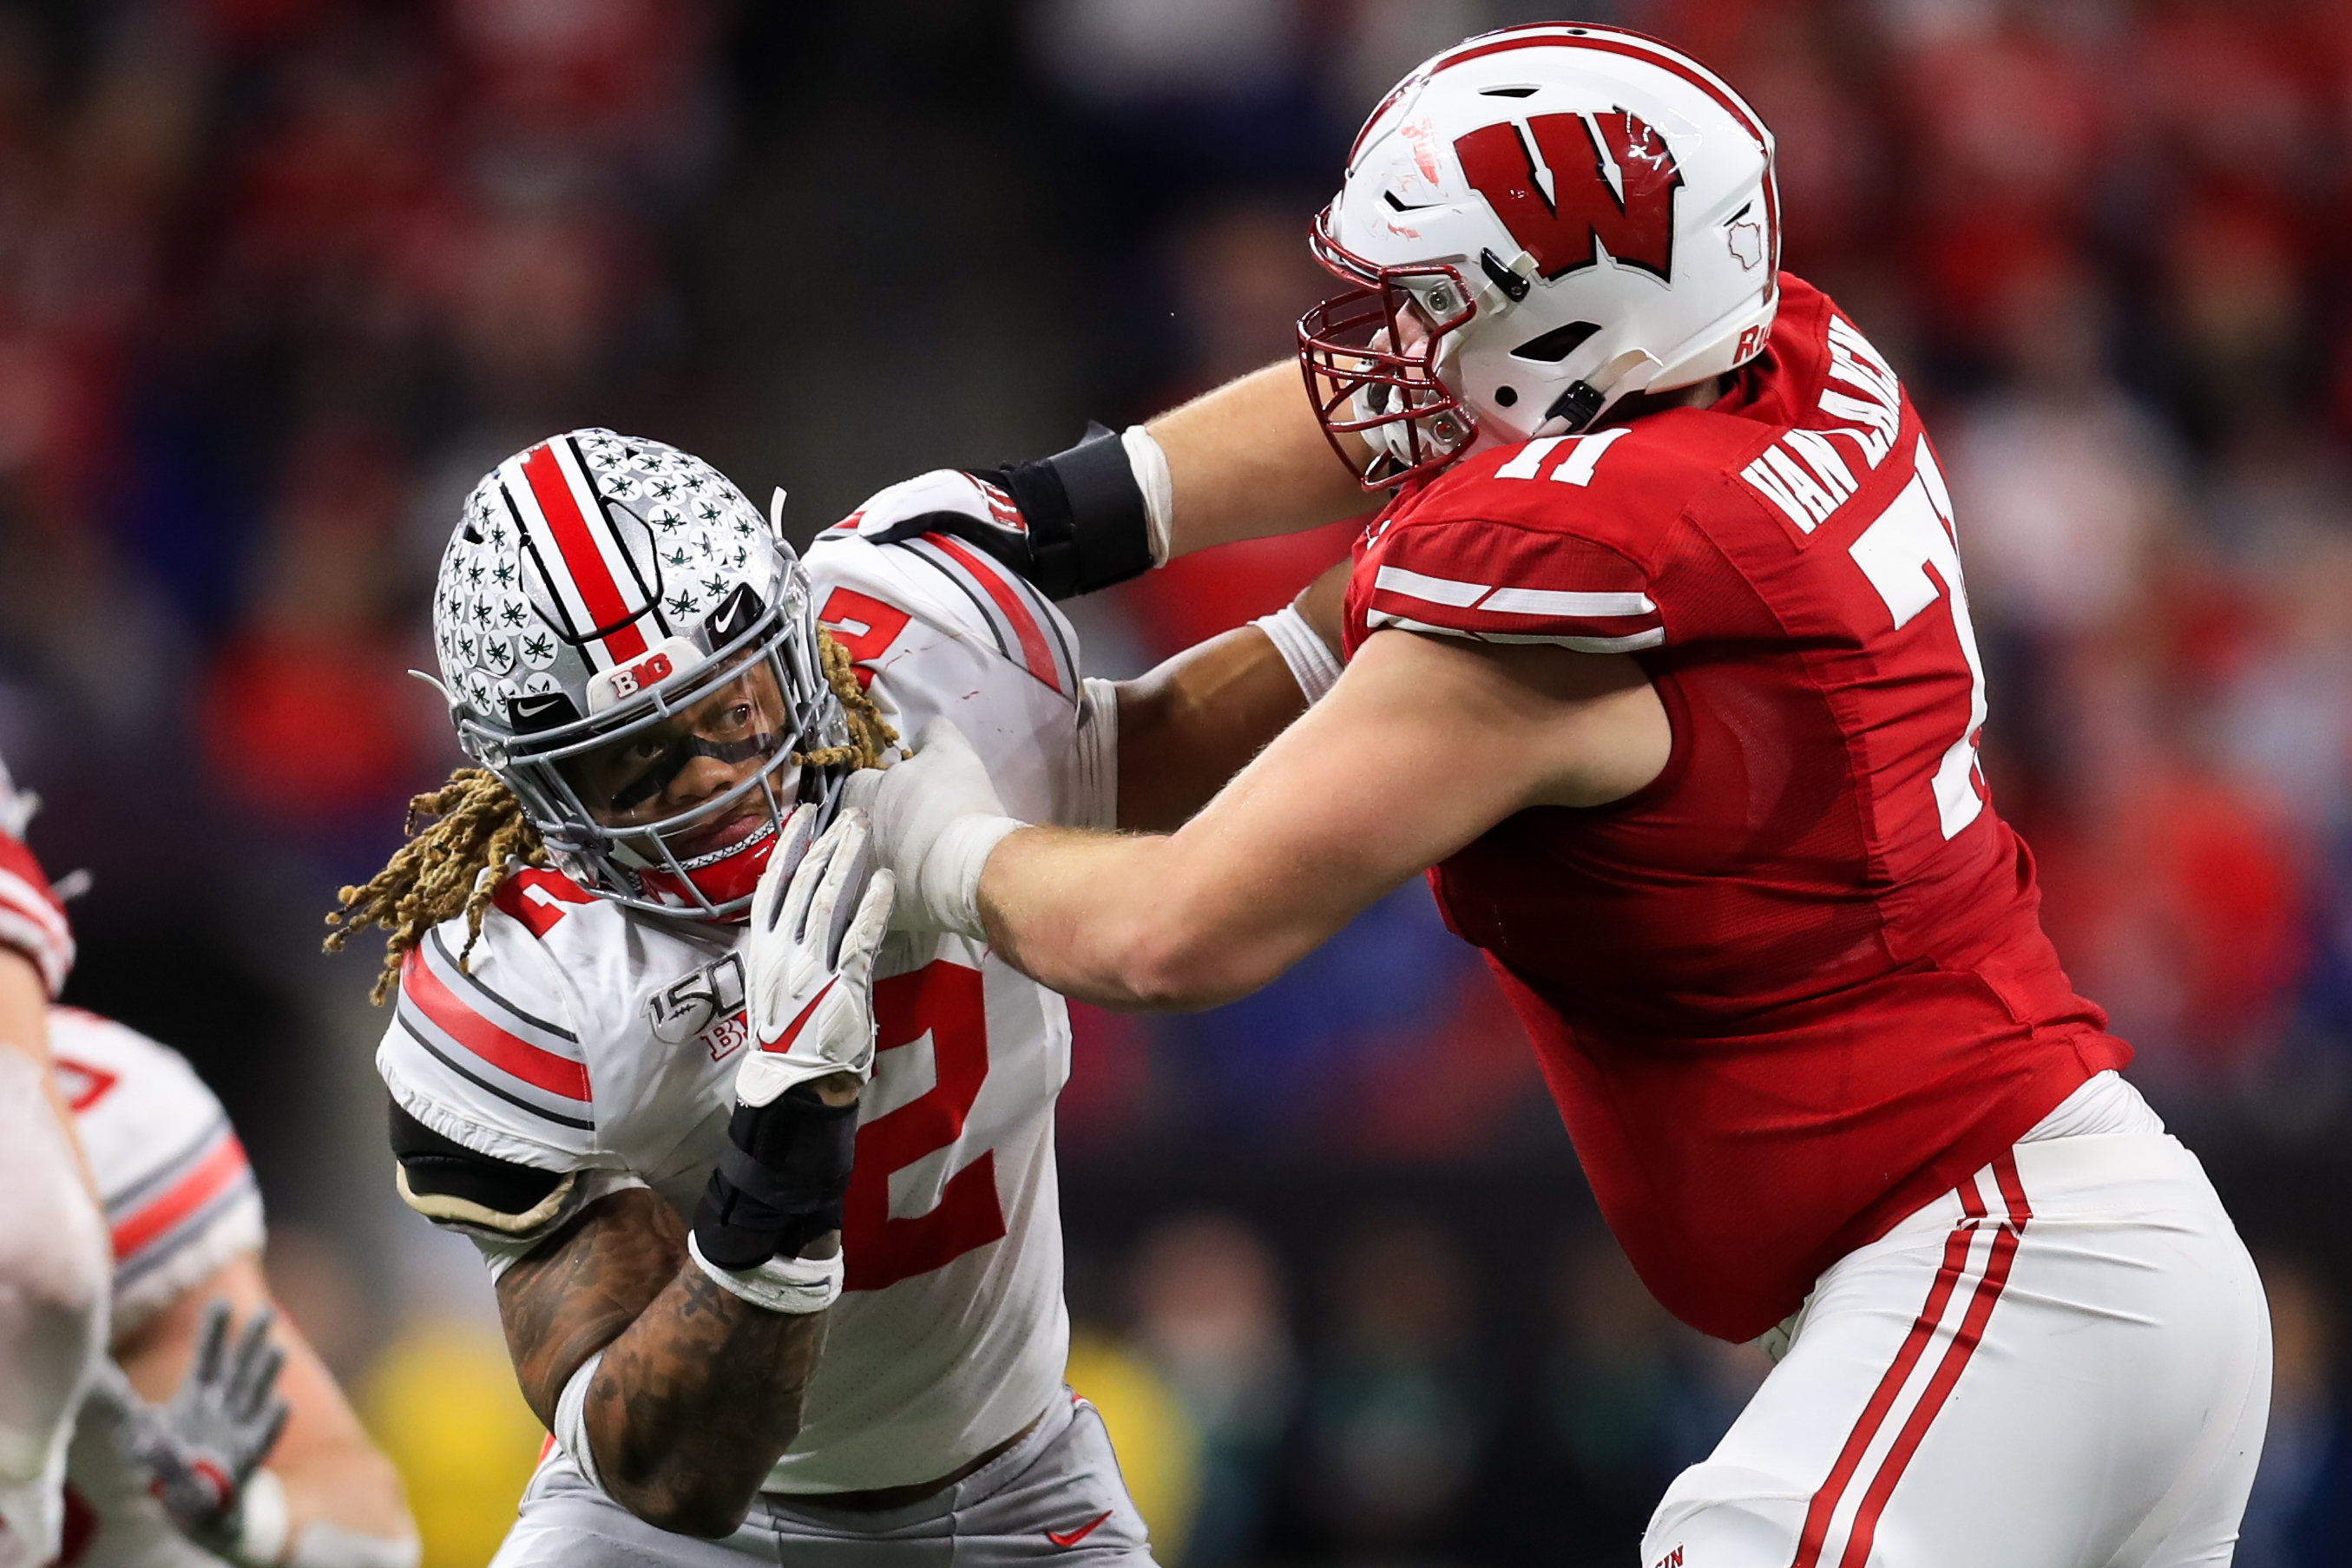 Early Look: The Ohio State Defense